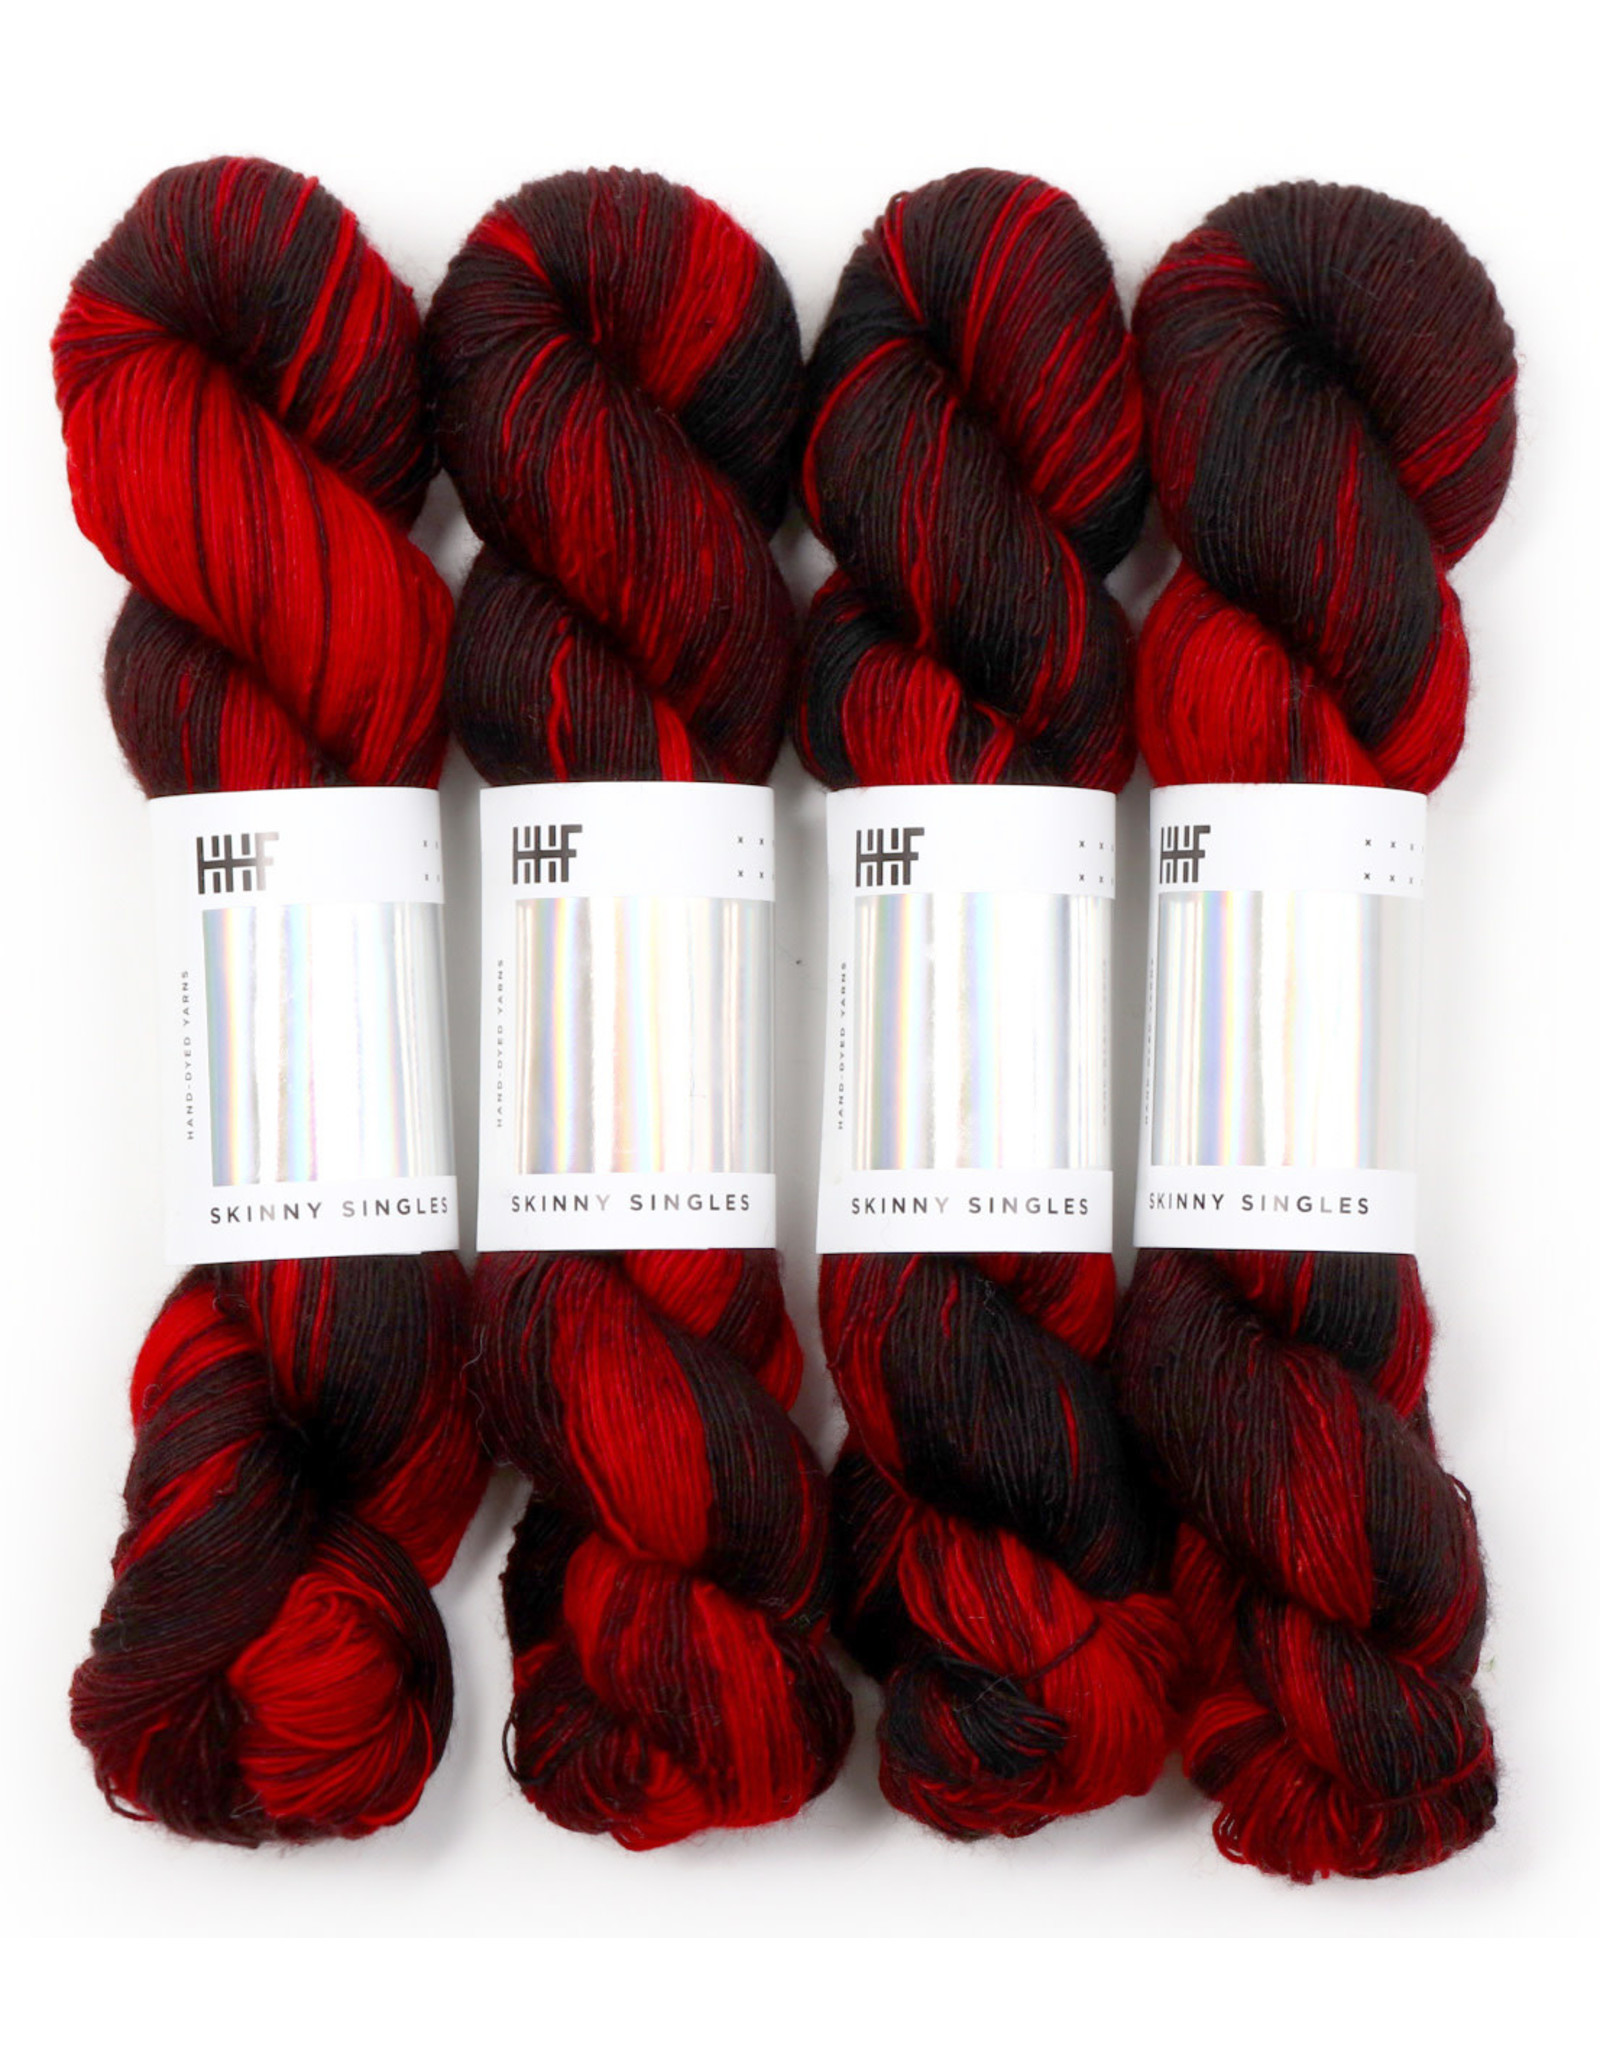 Hedgehog Fibres Sour Cherry - Skinny Singles - Hedgehog